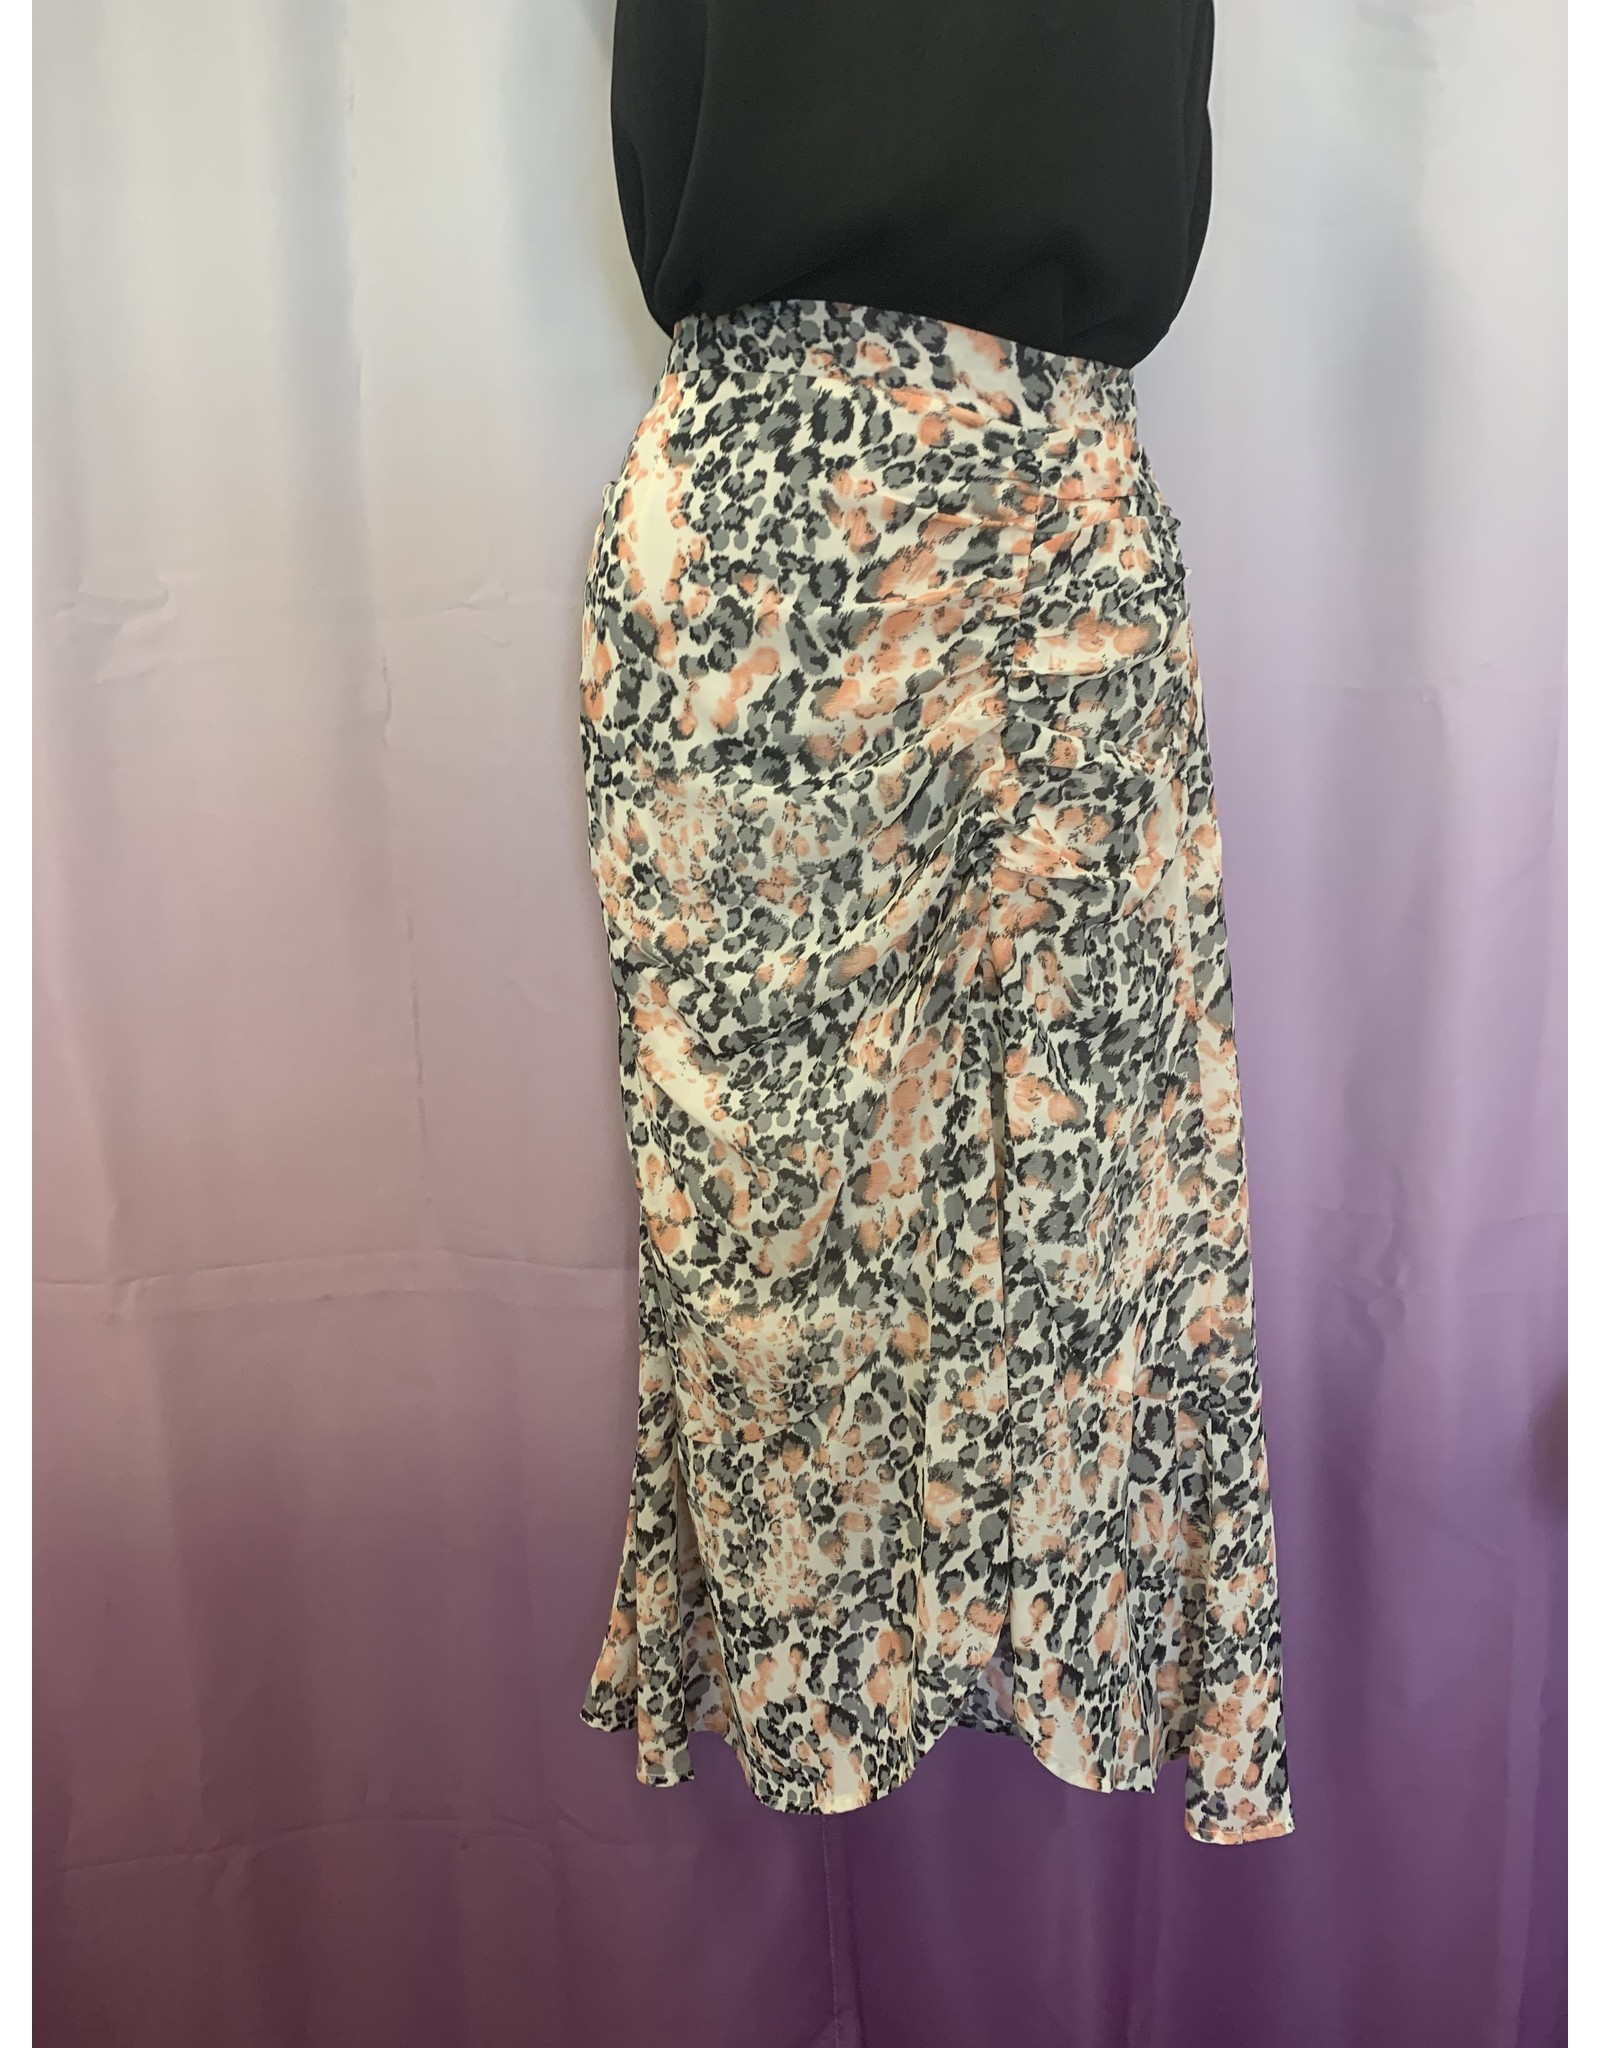 Ruched Leopard Print Skirt